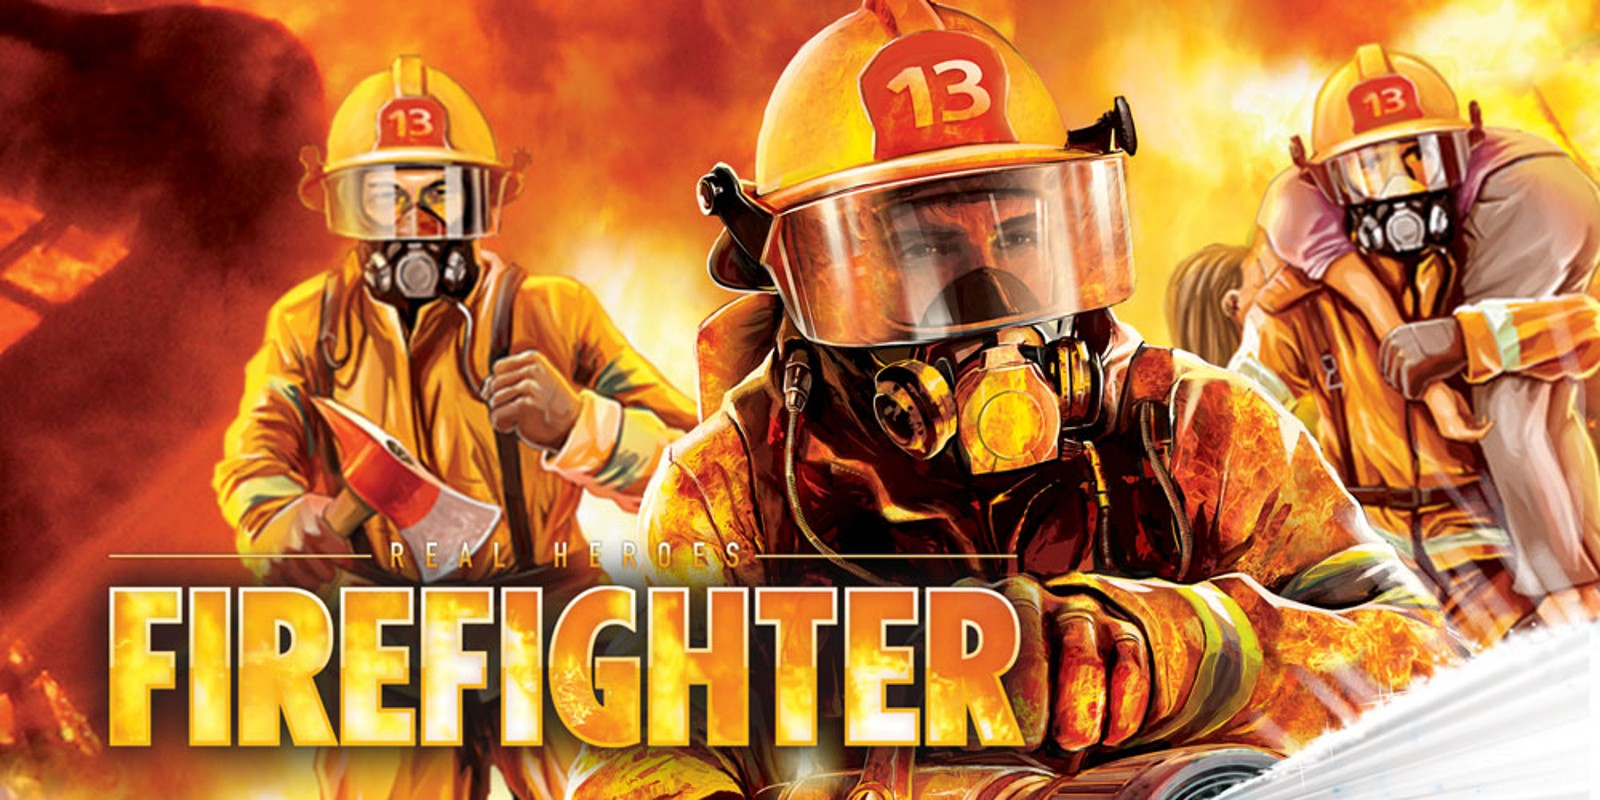 the true heroes are firefighters essay When we think of heroes, we think of firefighters, gandhi, harriet beecher stowe,  and neil armstrong of course, popular movie stars and.